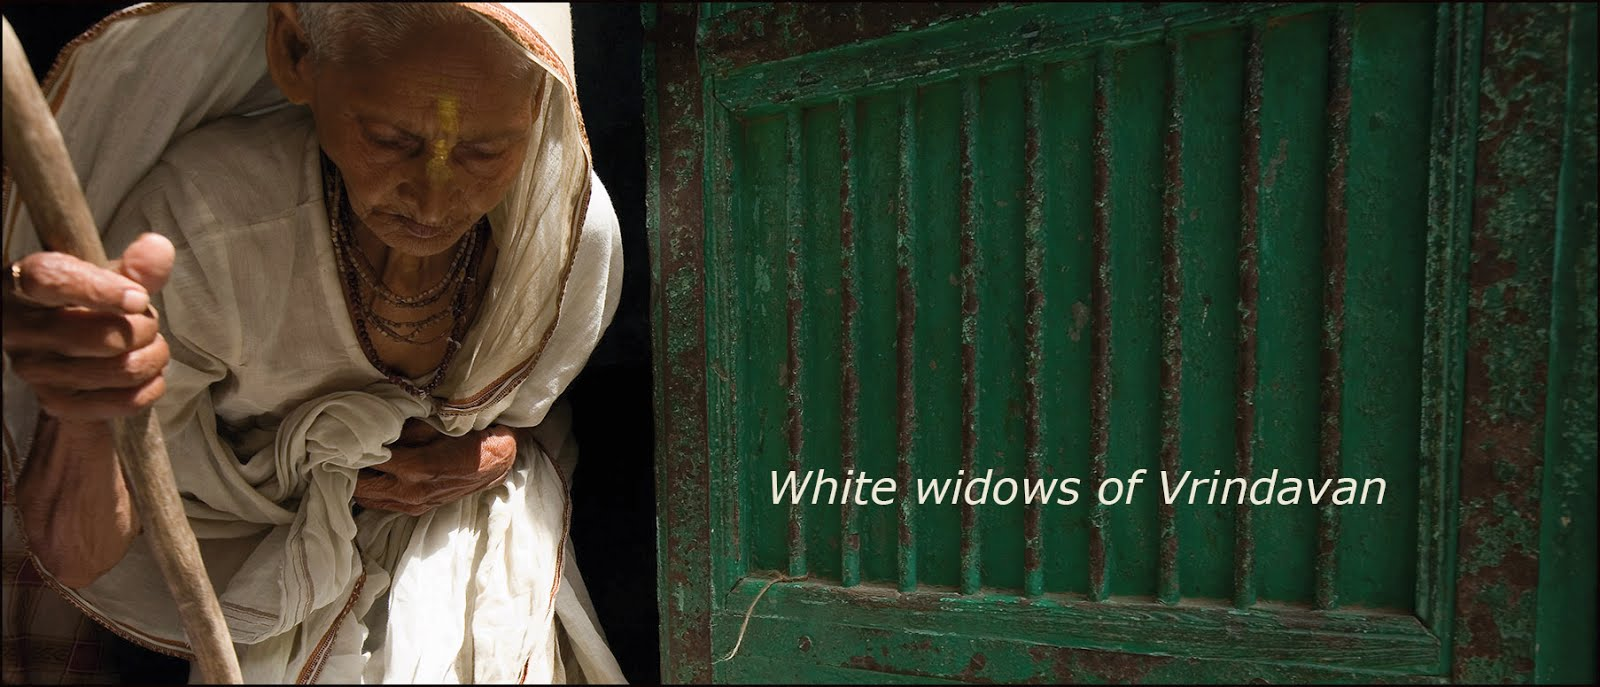 White Widows of Vrindavan.